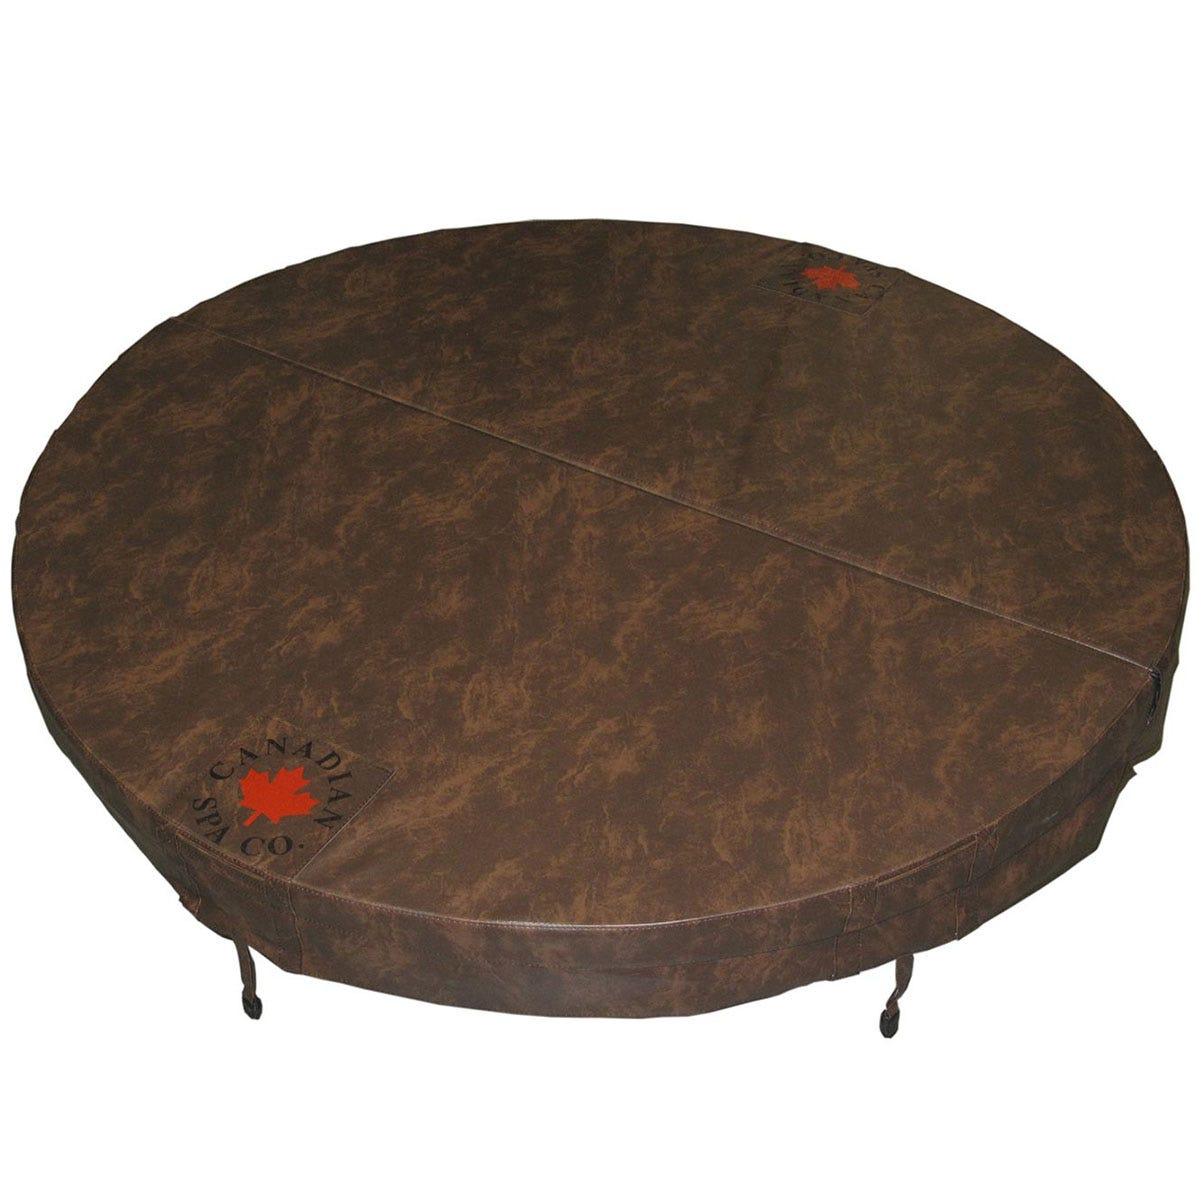 Canadian Spa Round Hot Tub Cover - Brown 203cm